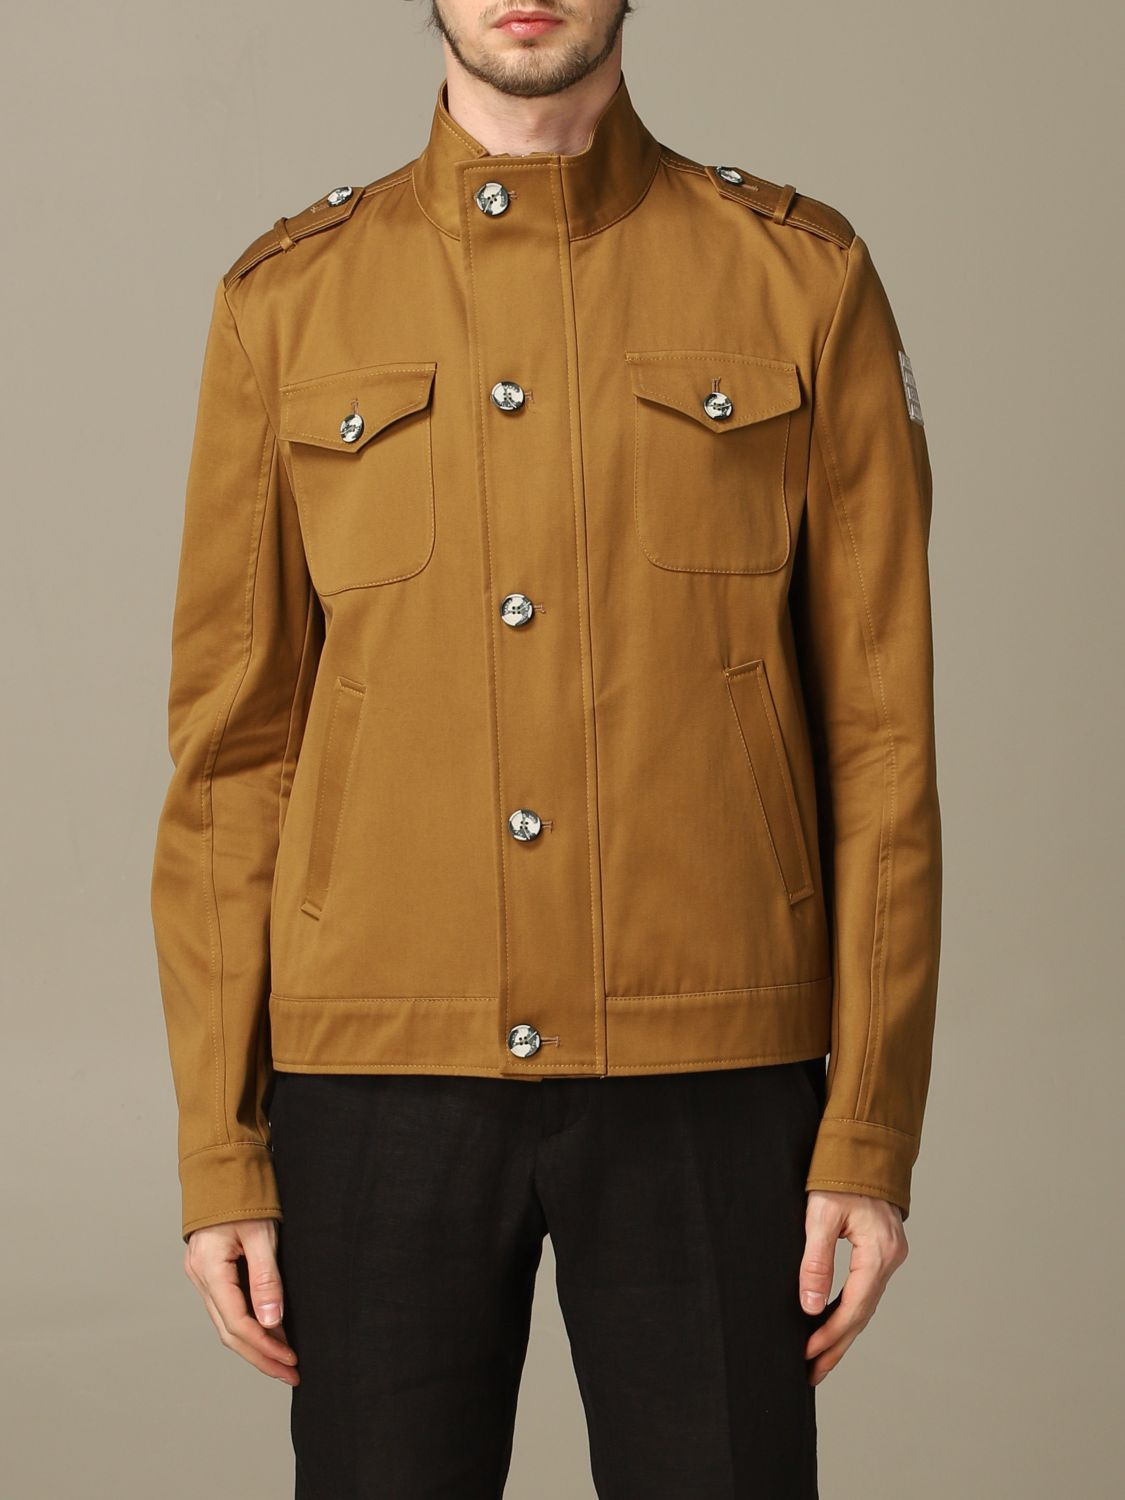 Jacket Alessandro Dell'acqua: Jacket men Alessandro Dell'acqua brown 1